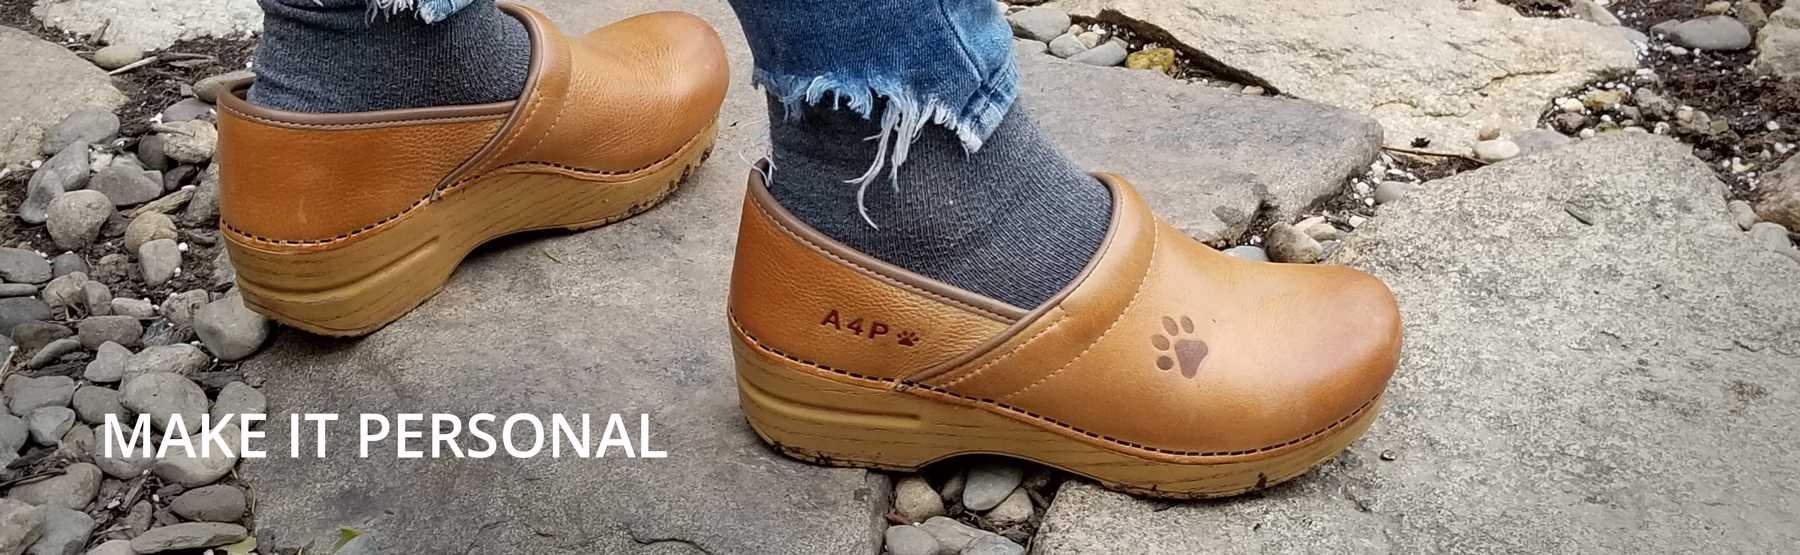 Custom Clogs | Personalized Shoes